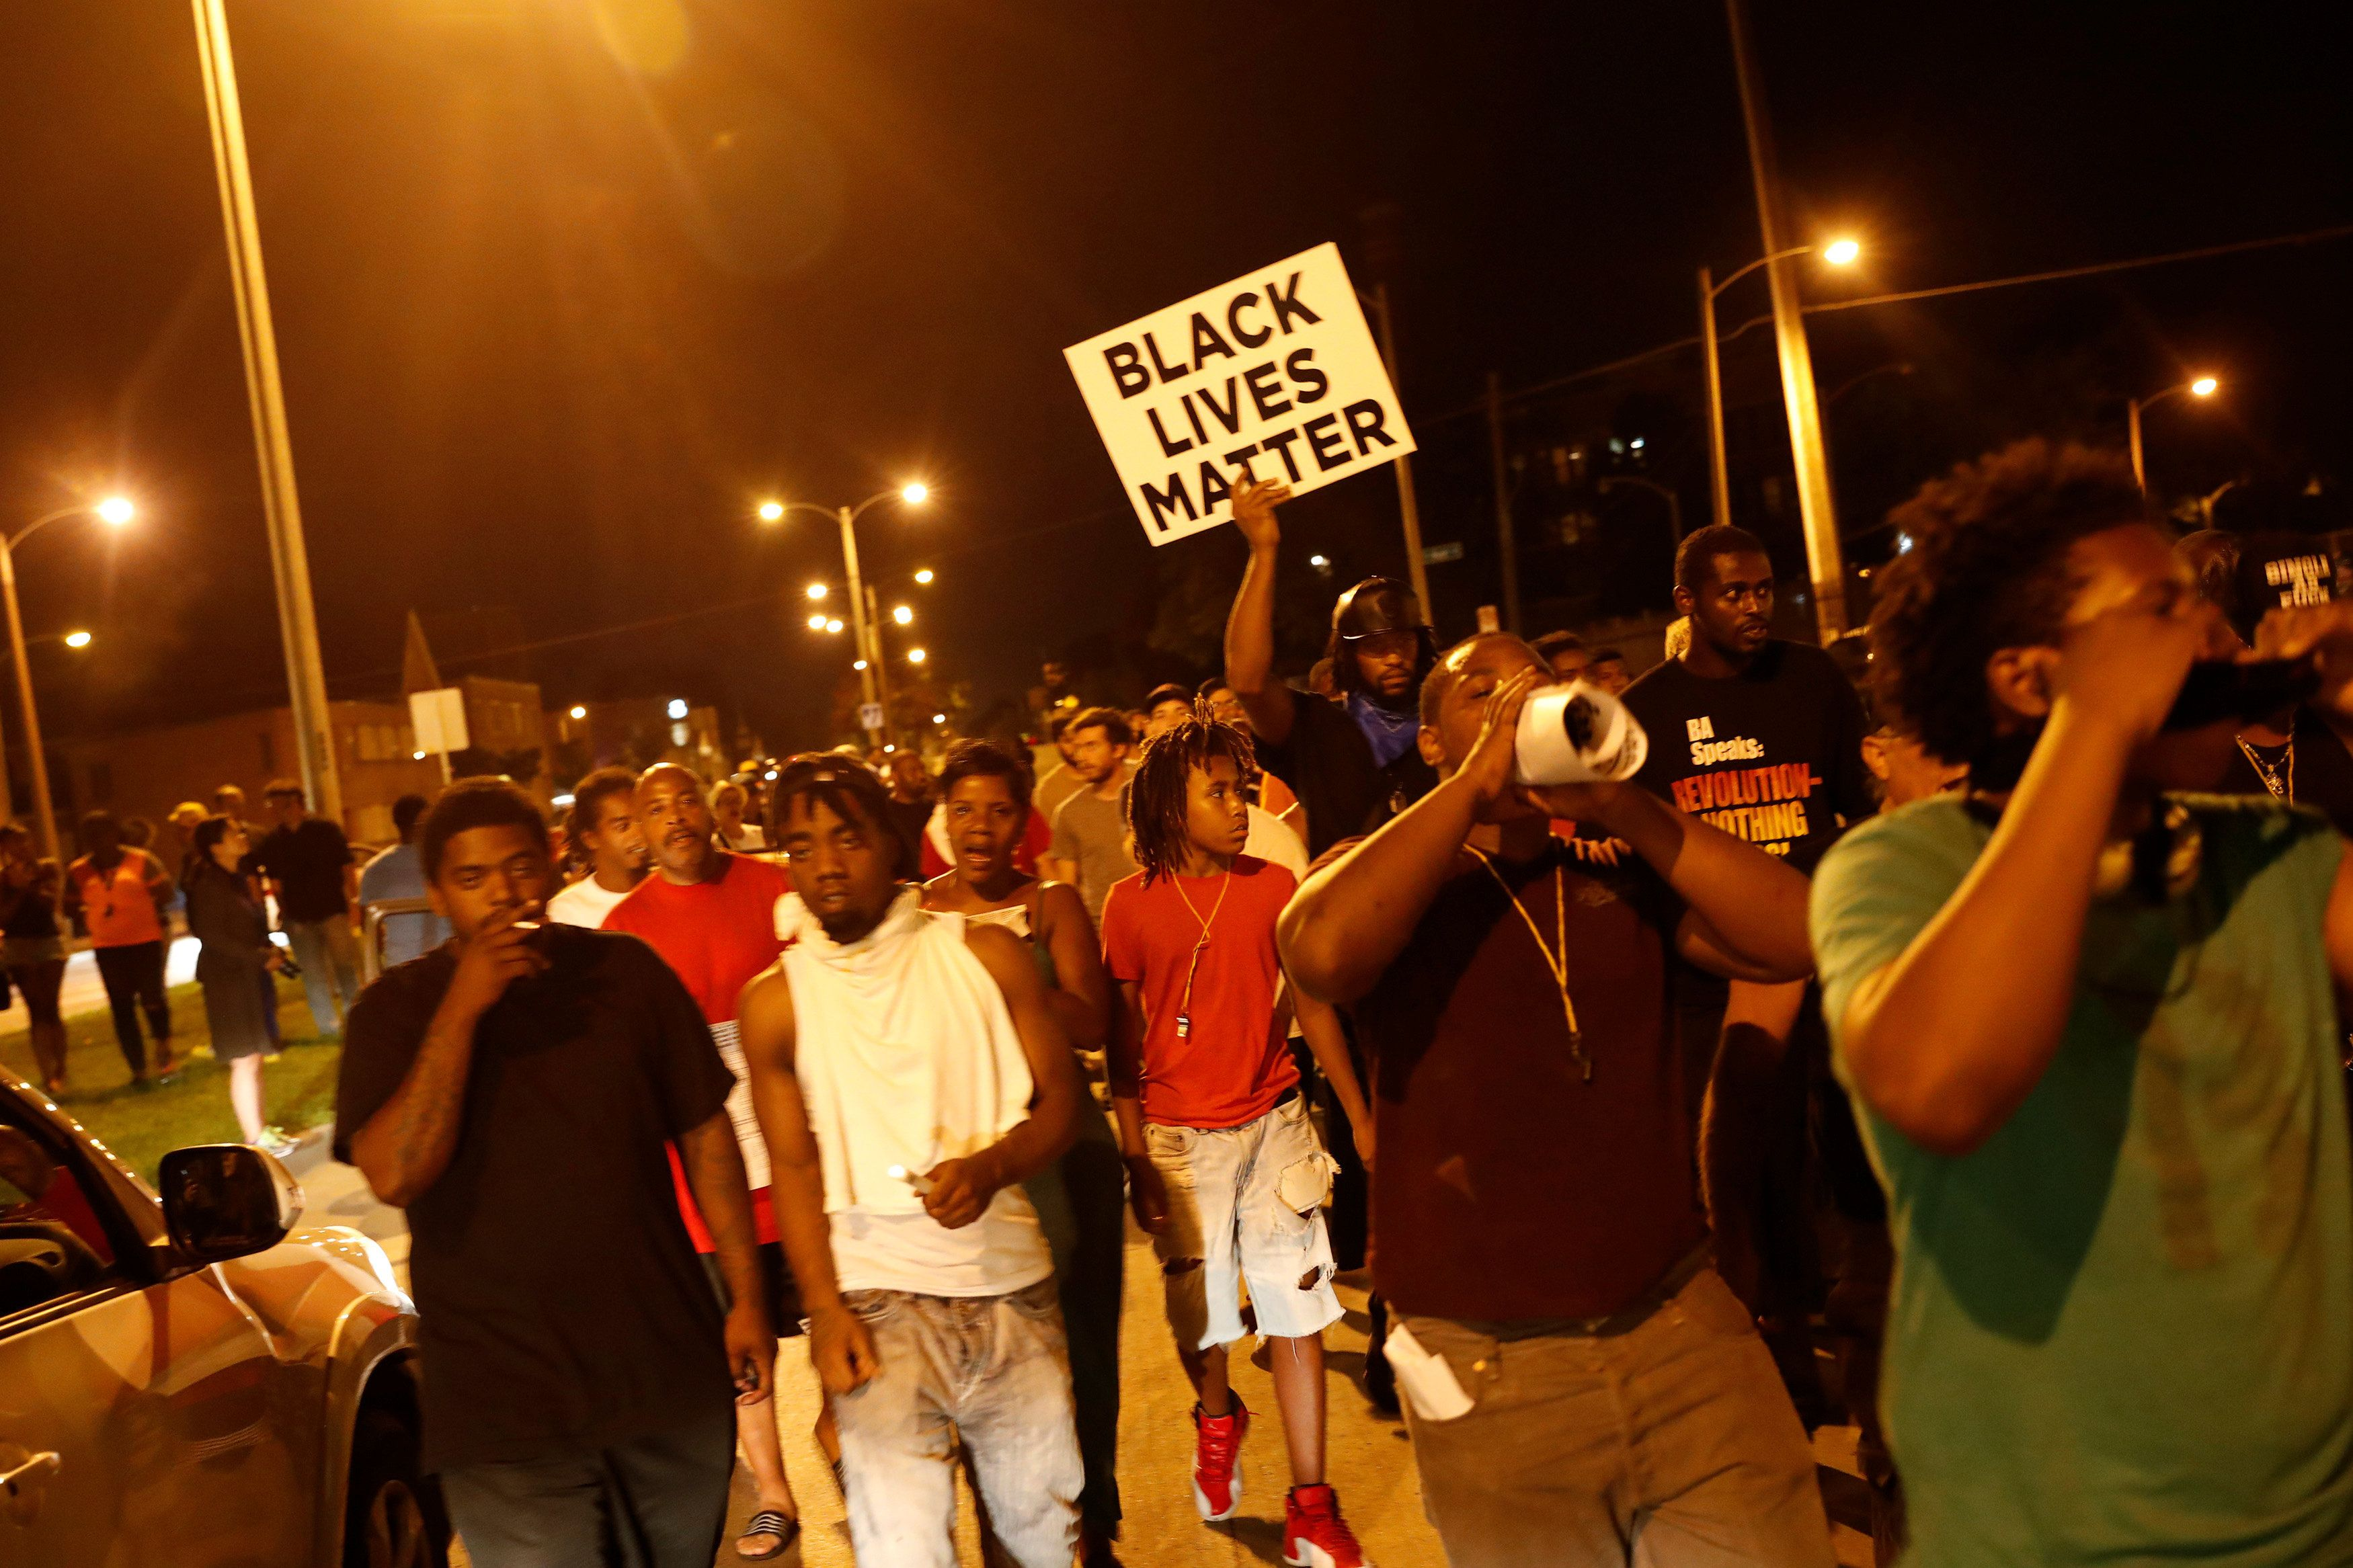 Protesters marched on Sunday following the police shooting of an armed manin Milwaukee.